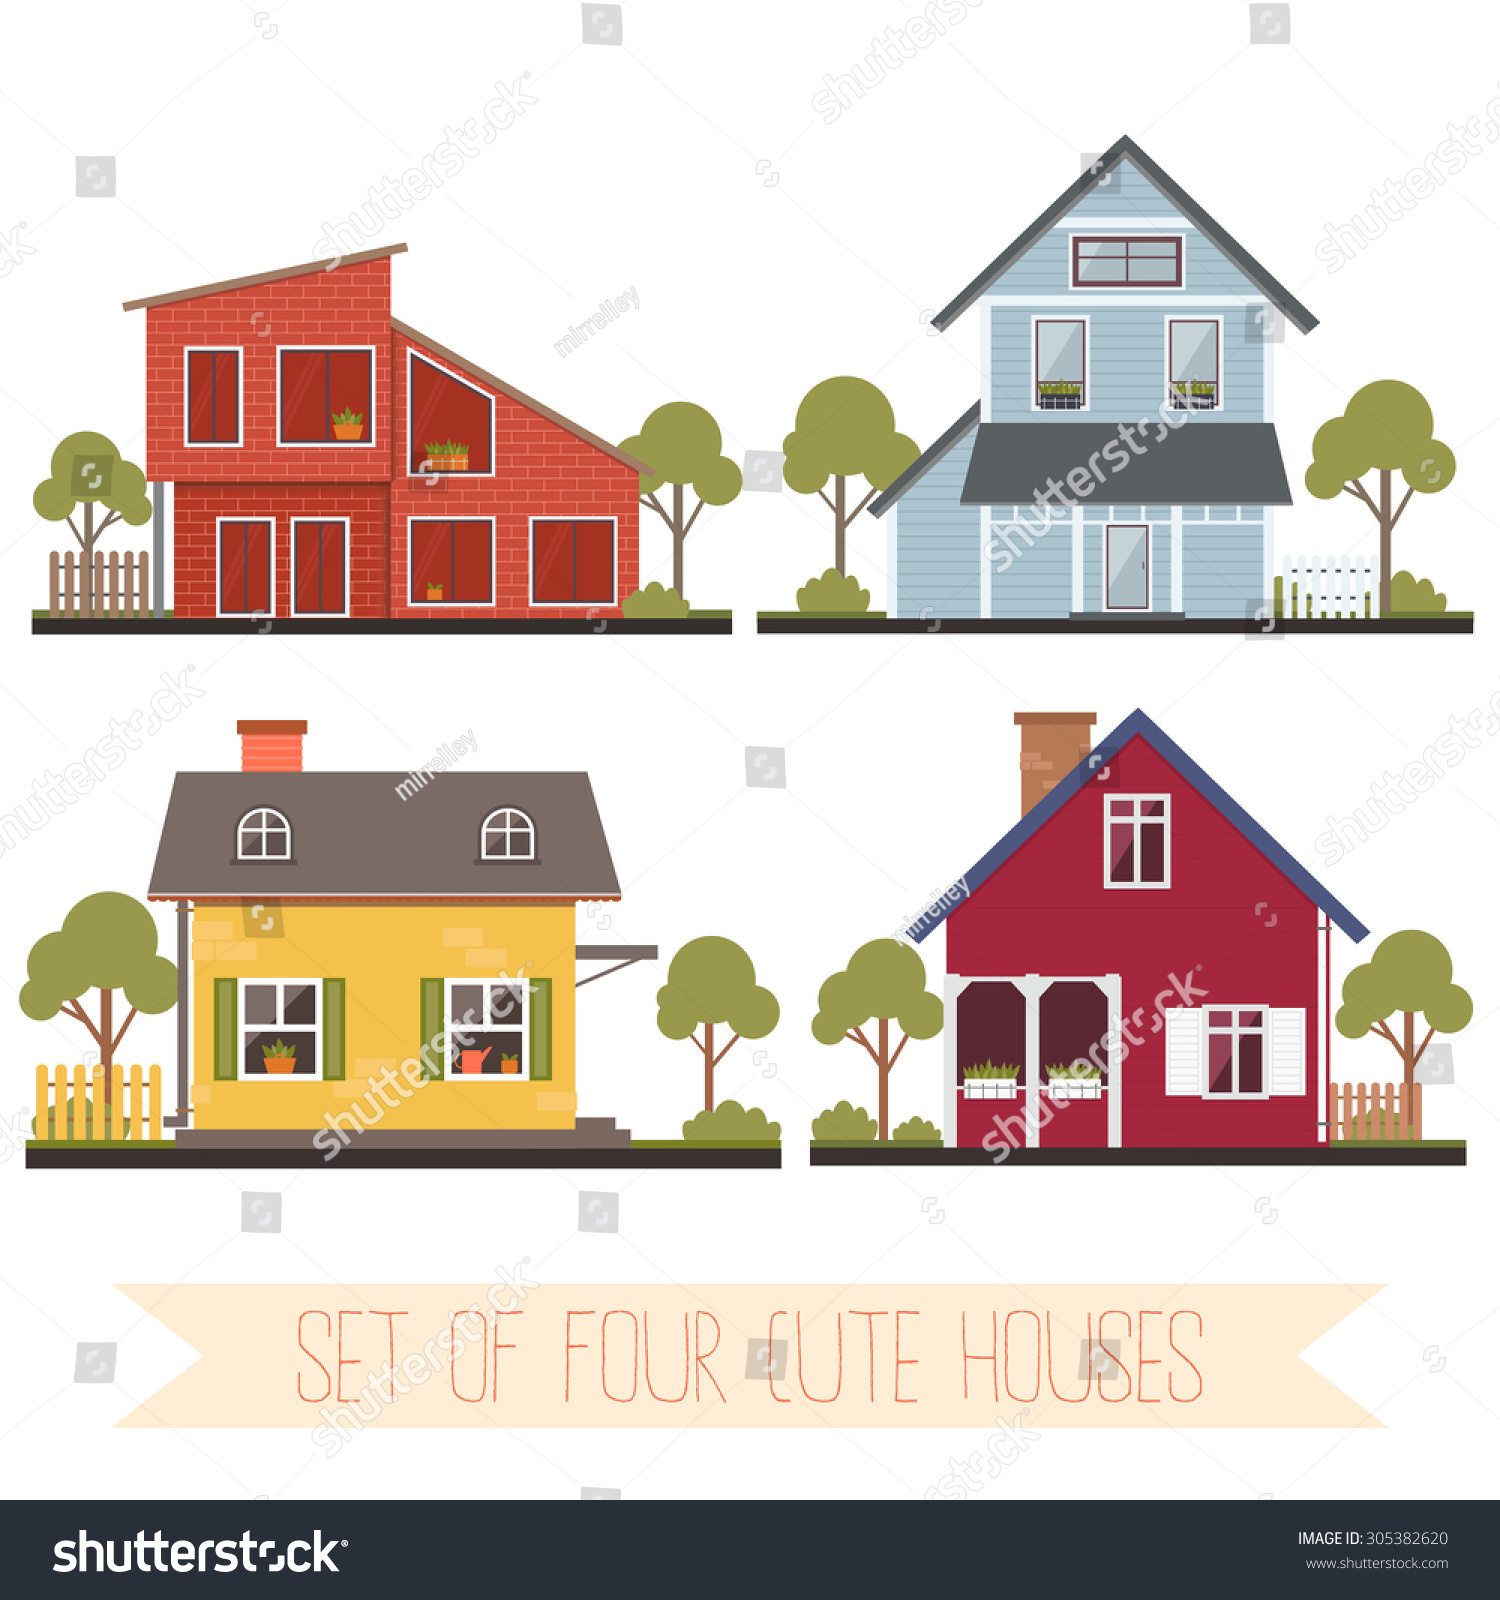 Set four cute houses trees vector stock vector 305382620 for Cute house images